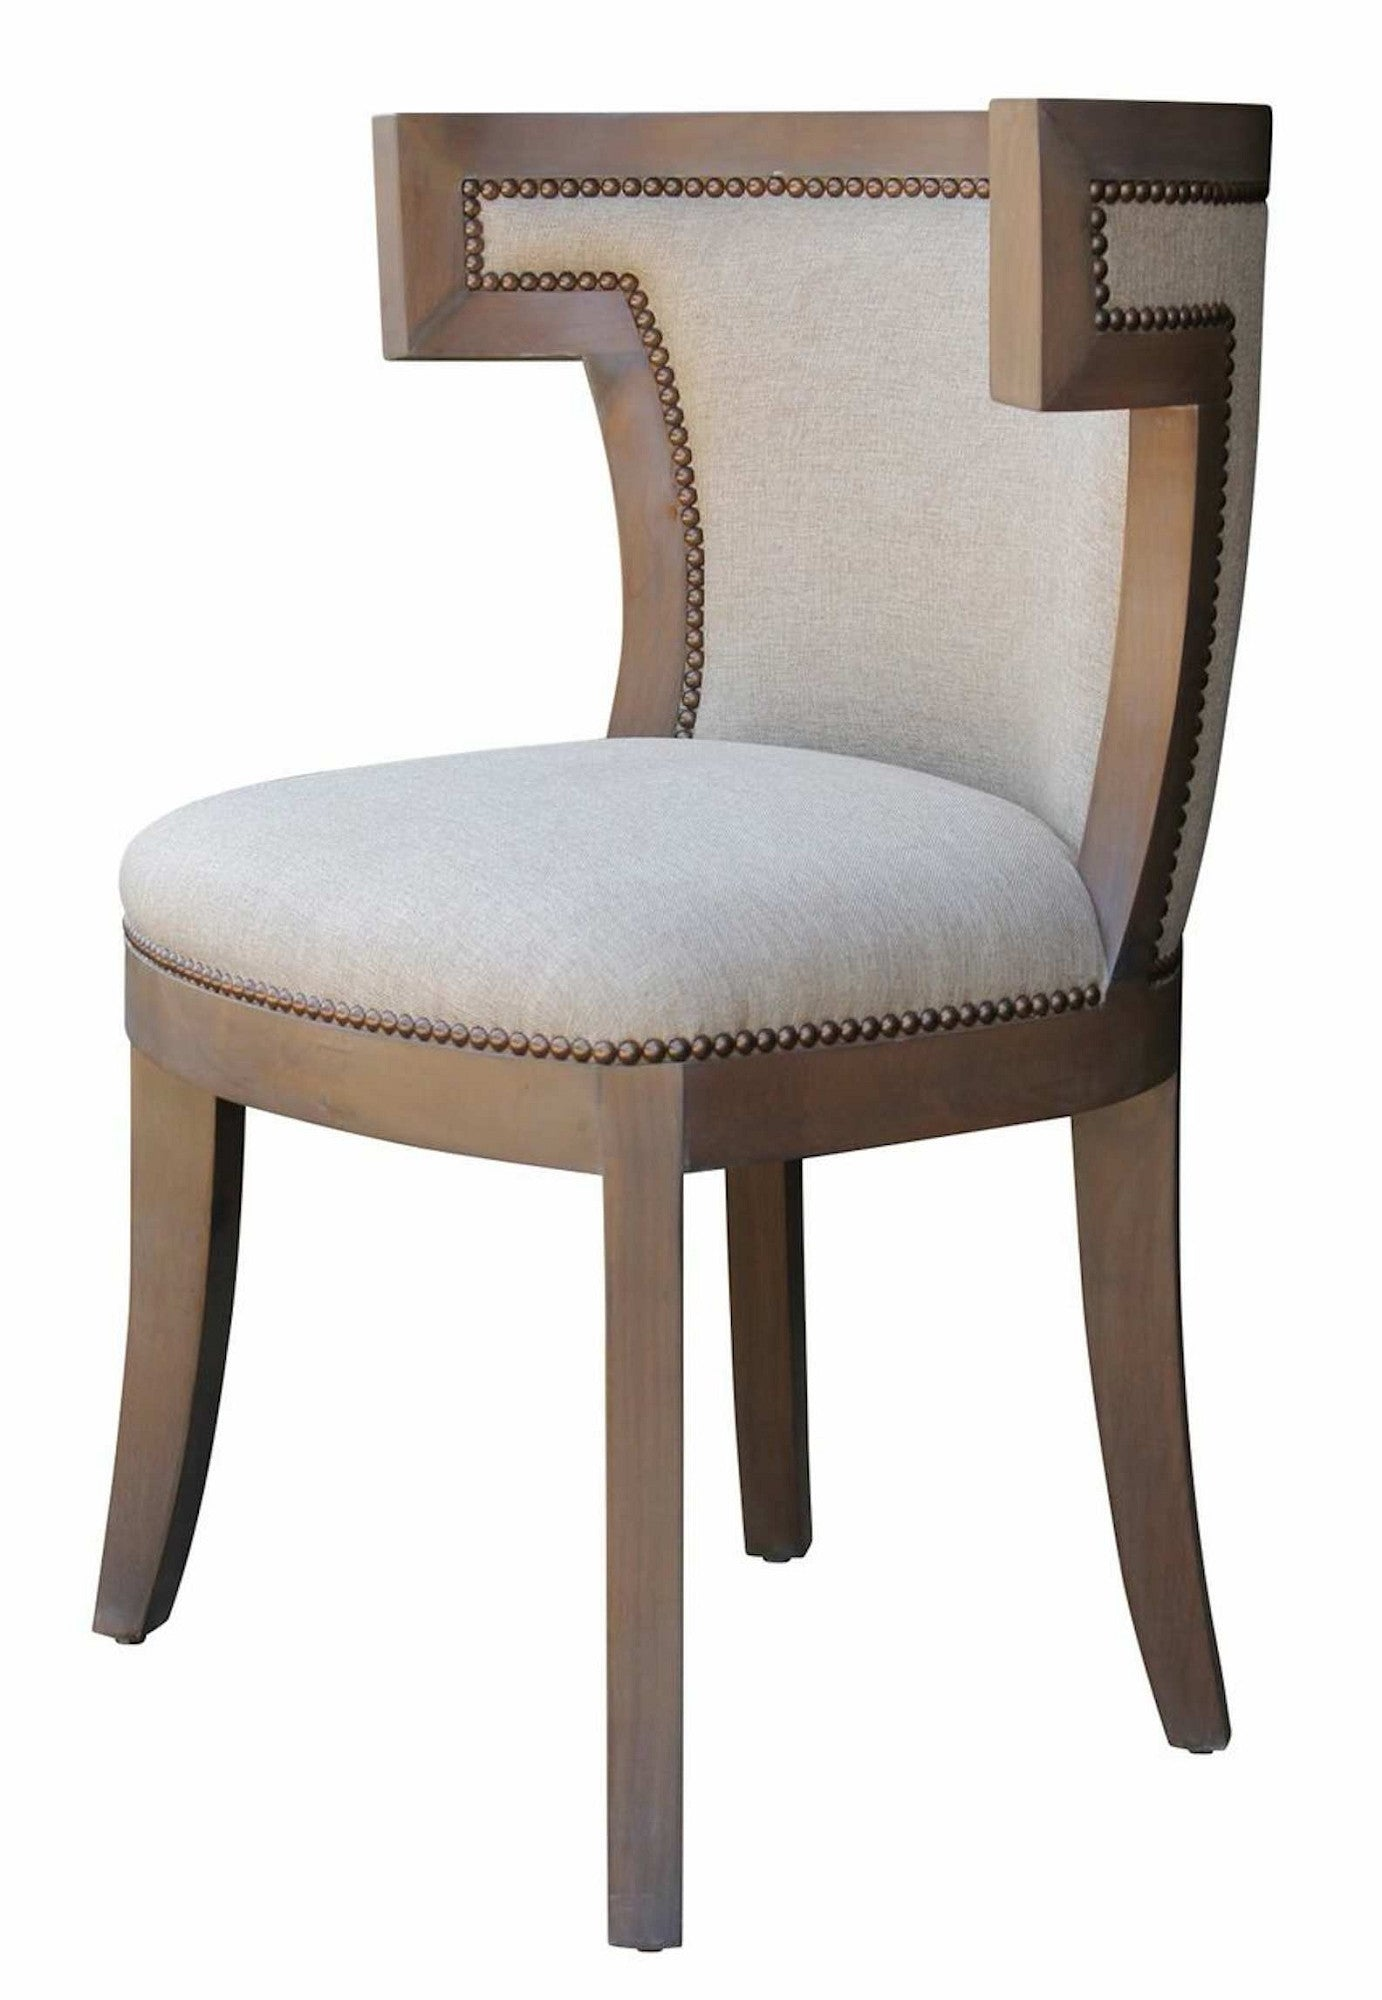 Custom Dining Room Chairs For Every Home Interior Design Style From